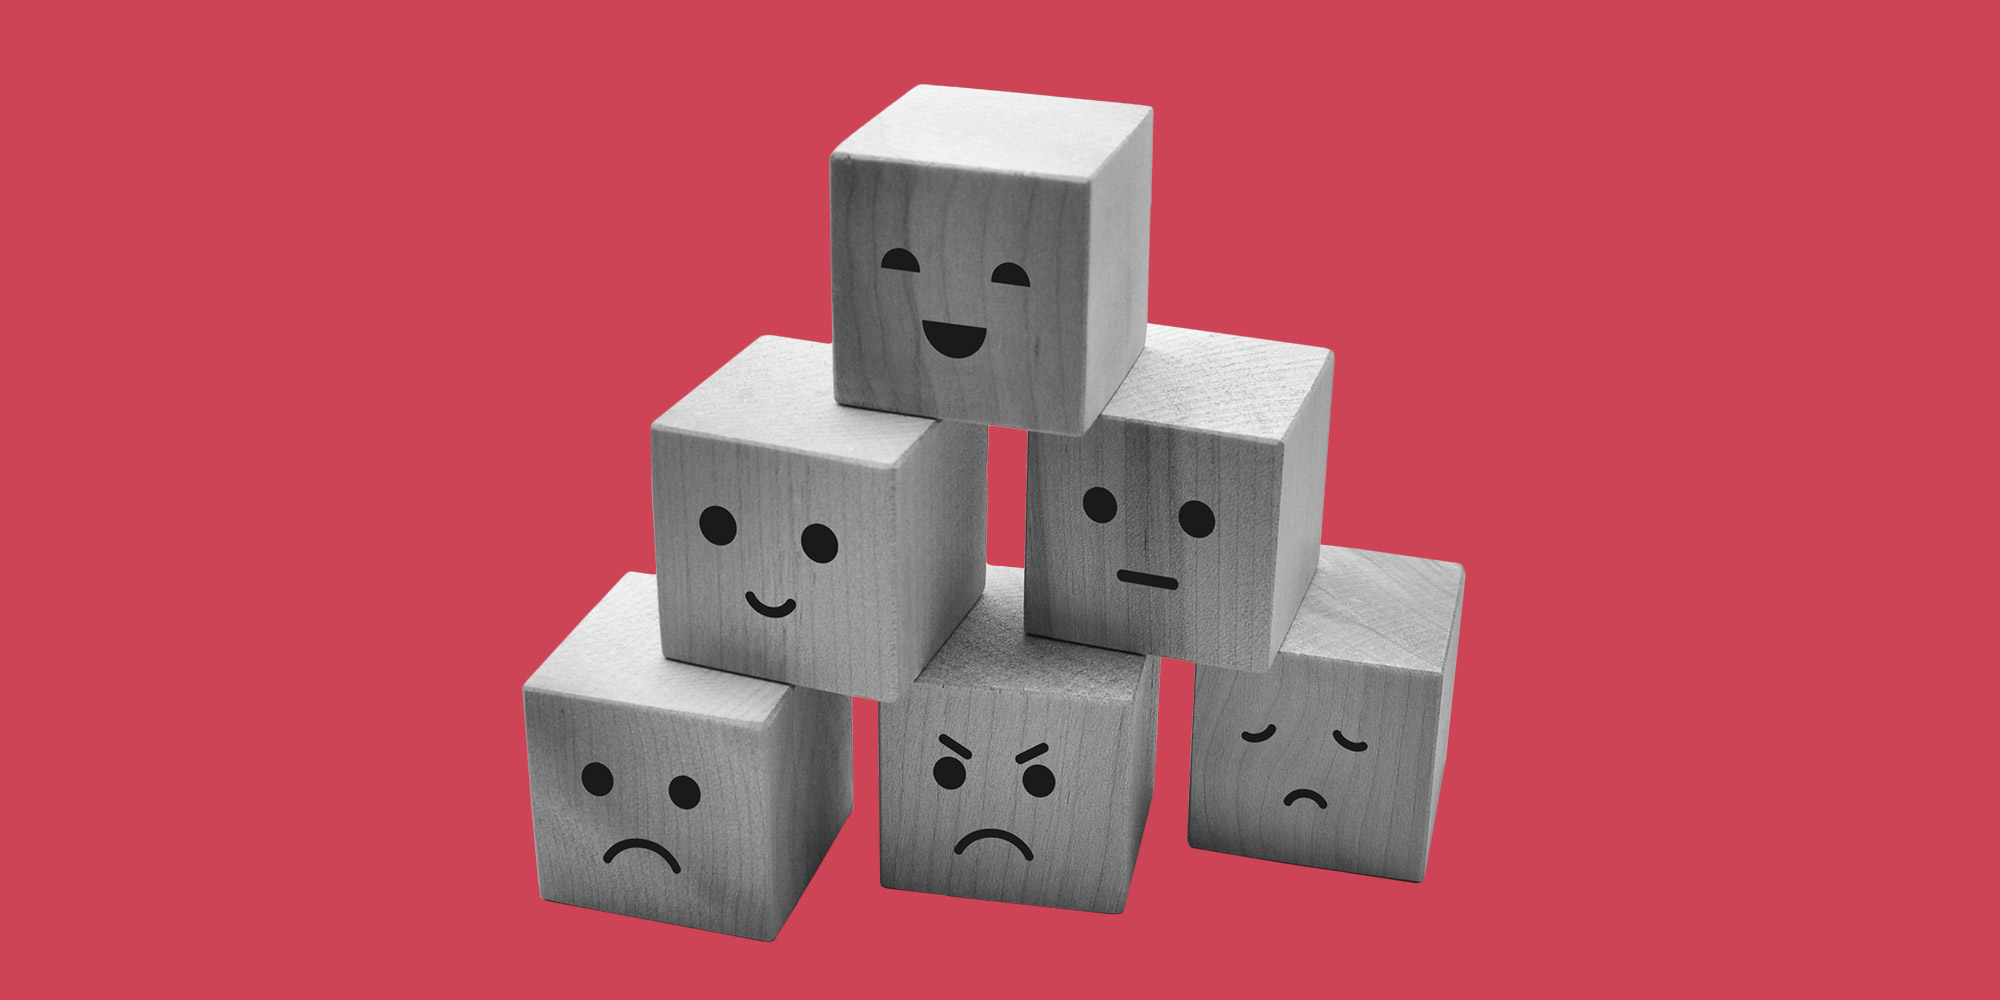 A stack of wooden children's blocks with facial expressions painted on them